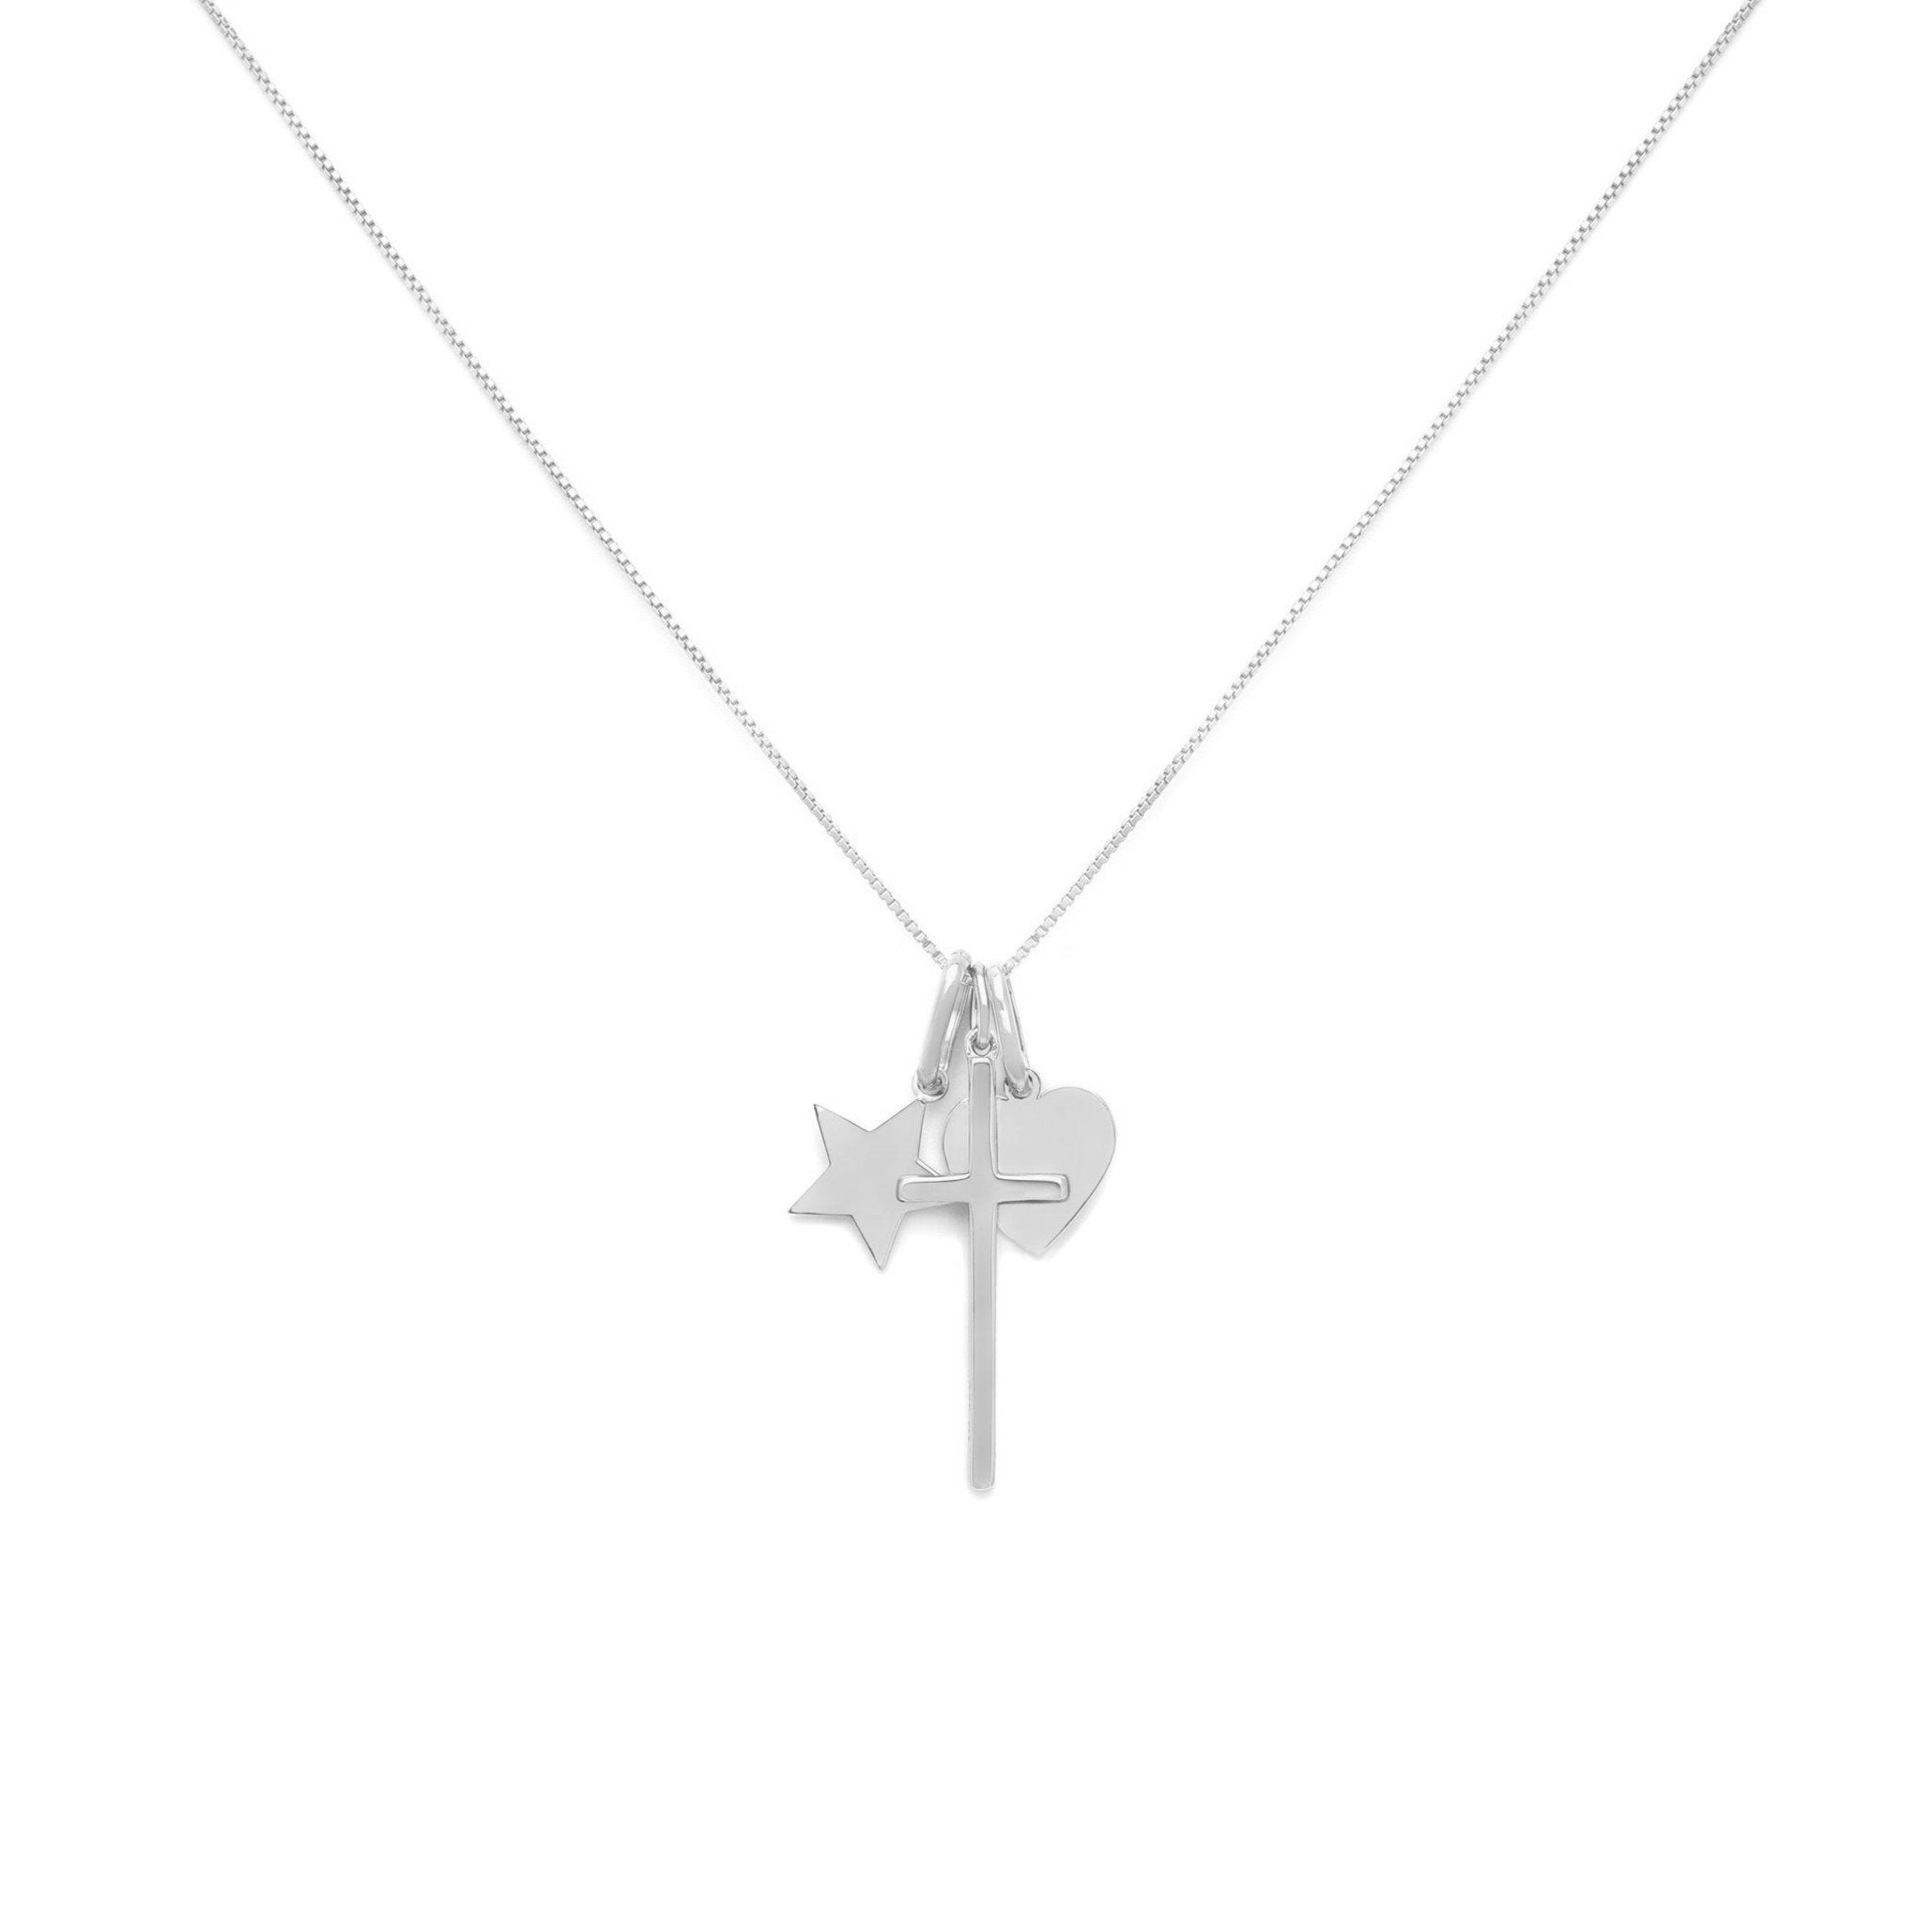 Love and Faith Charm Necklace - Sterling Silver